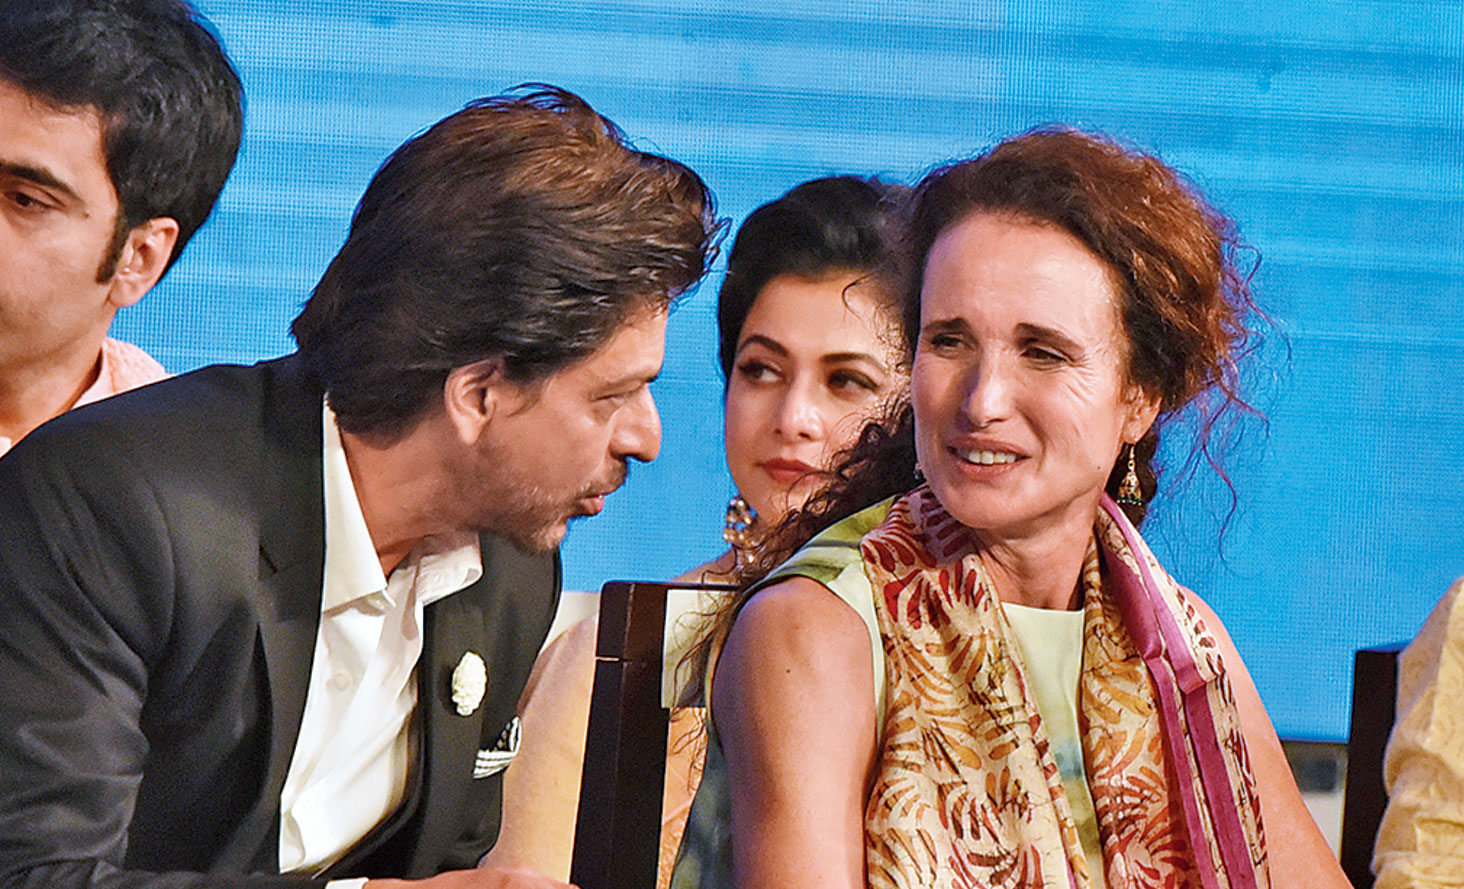 Andie MacDowell with Shah Rukh Khan at the inauguration of KIFF.